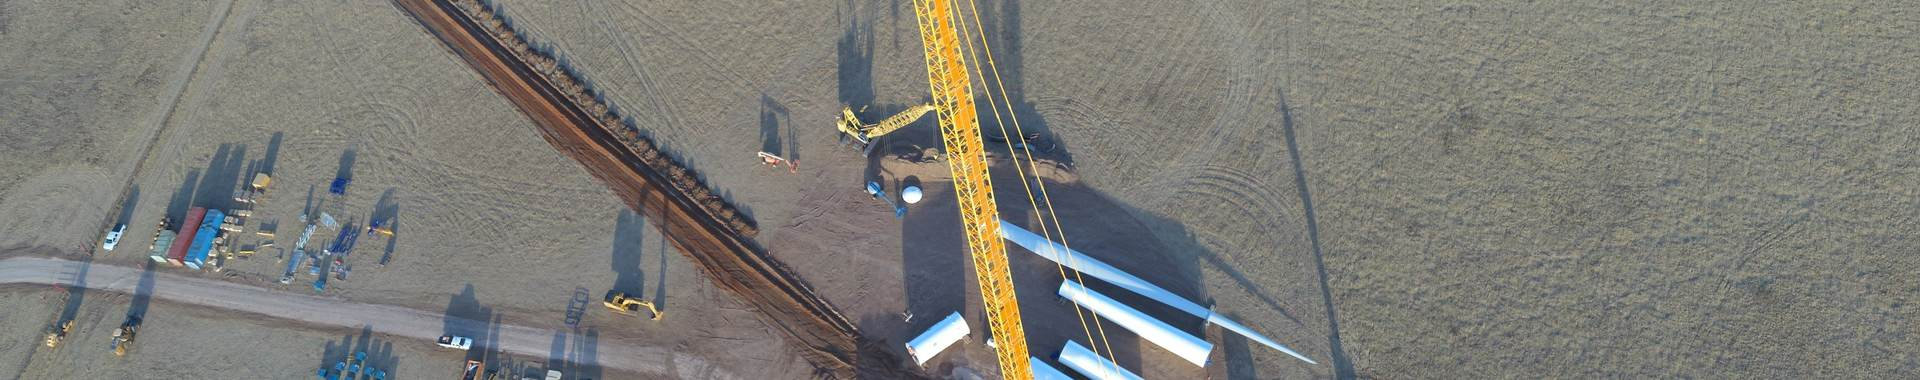 Aerial view of the construction of the Goldwind wind turbine in West Texas